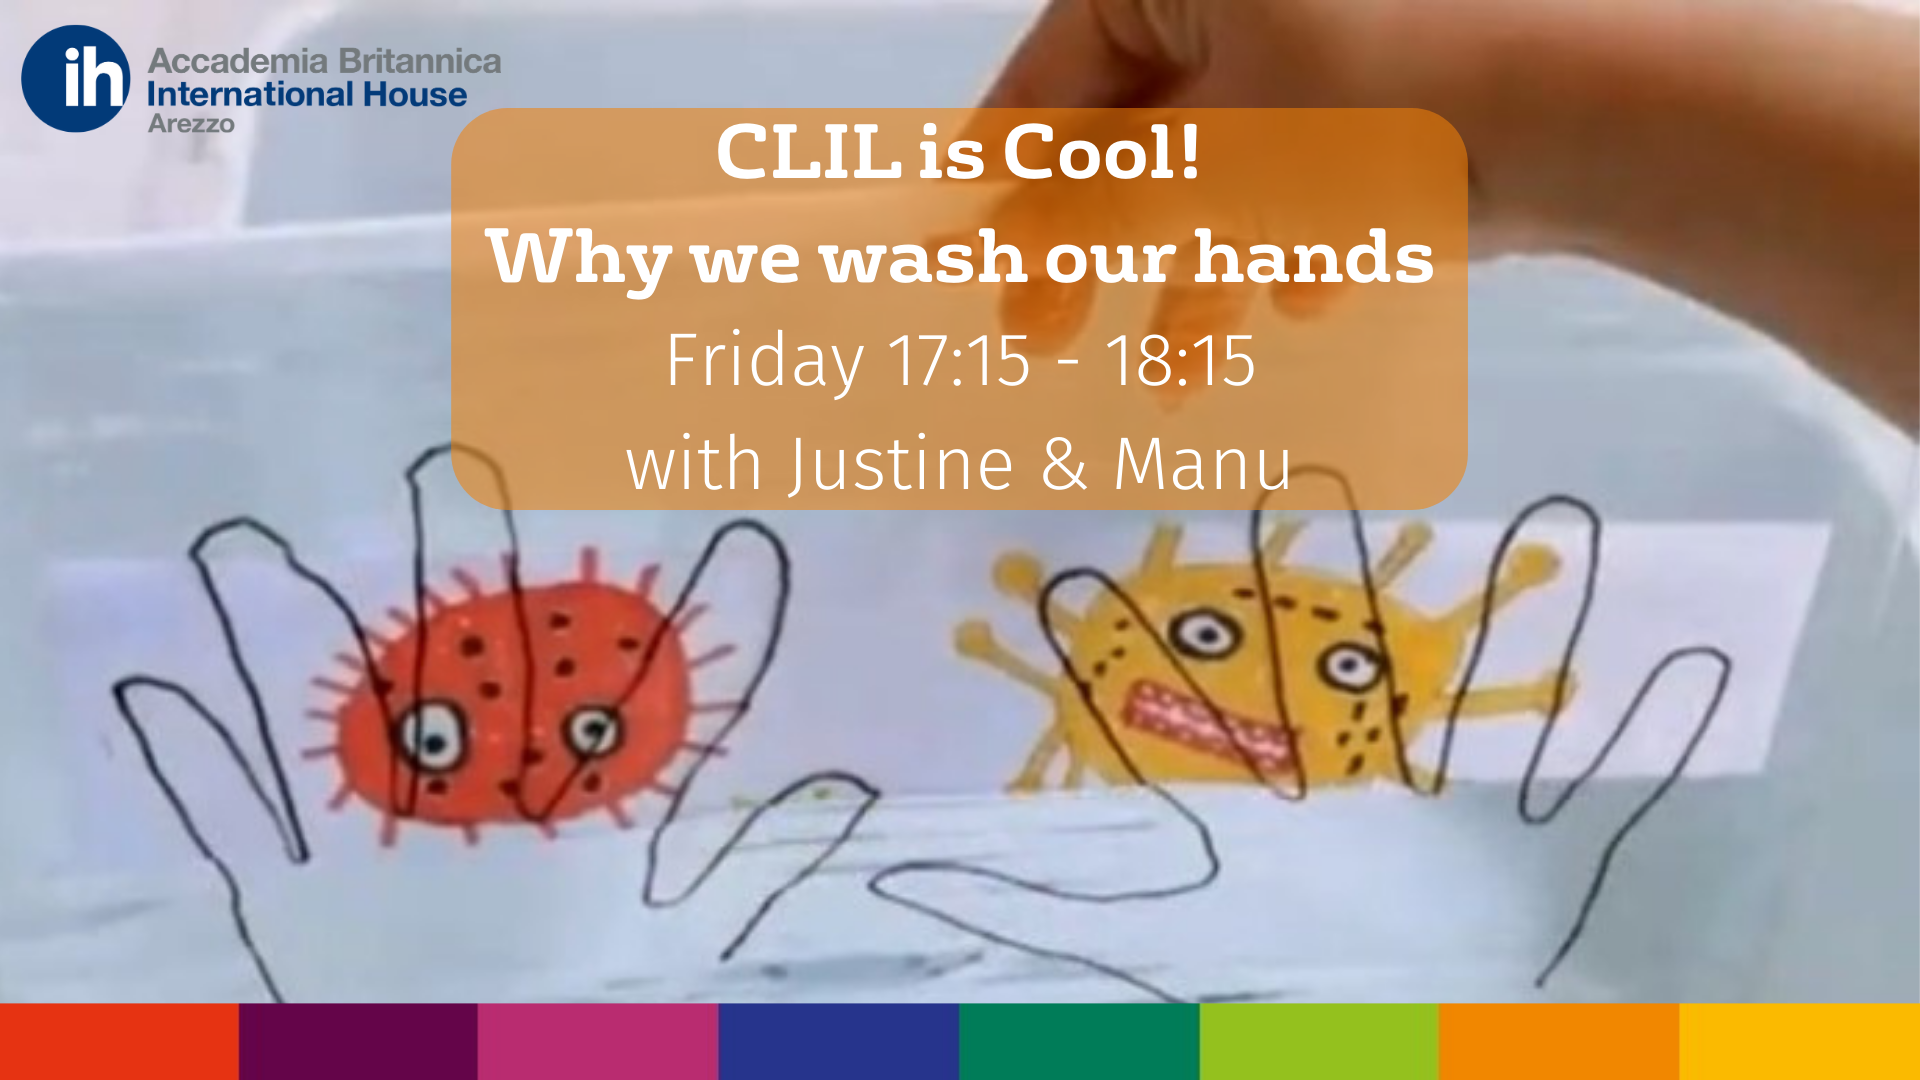 CLIL is Cool - Why we wash our hands | Accademia Britannica IH Arezzo